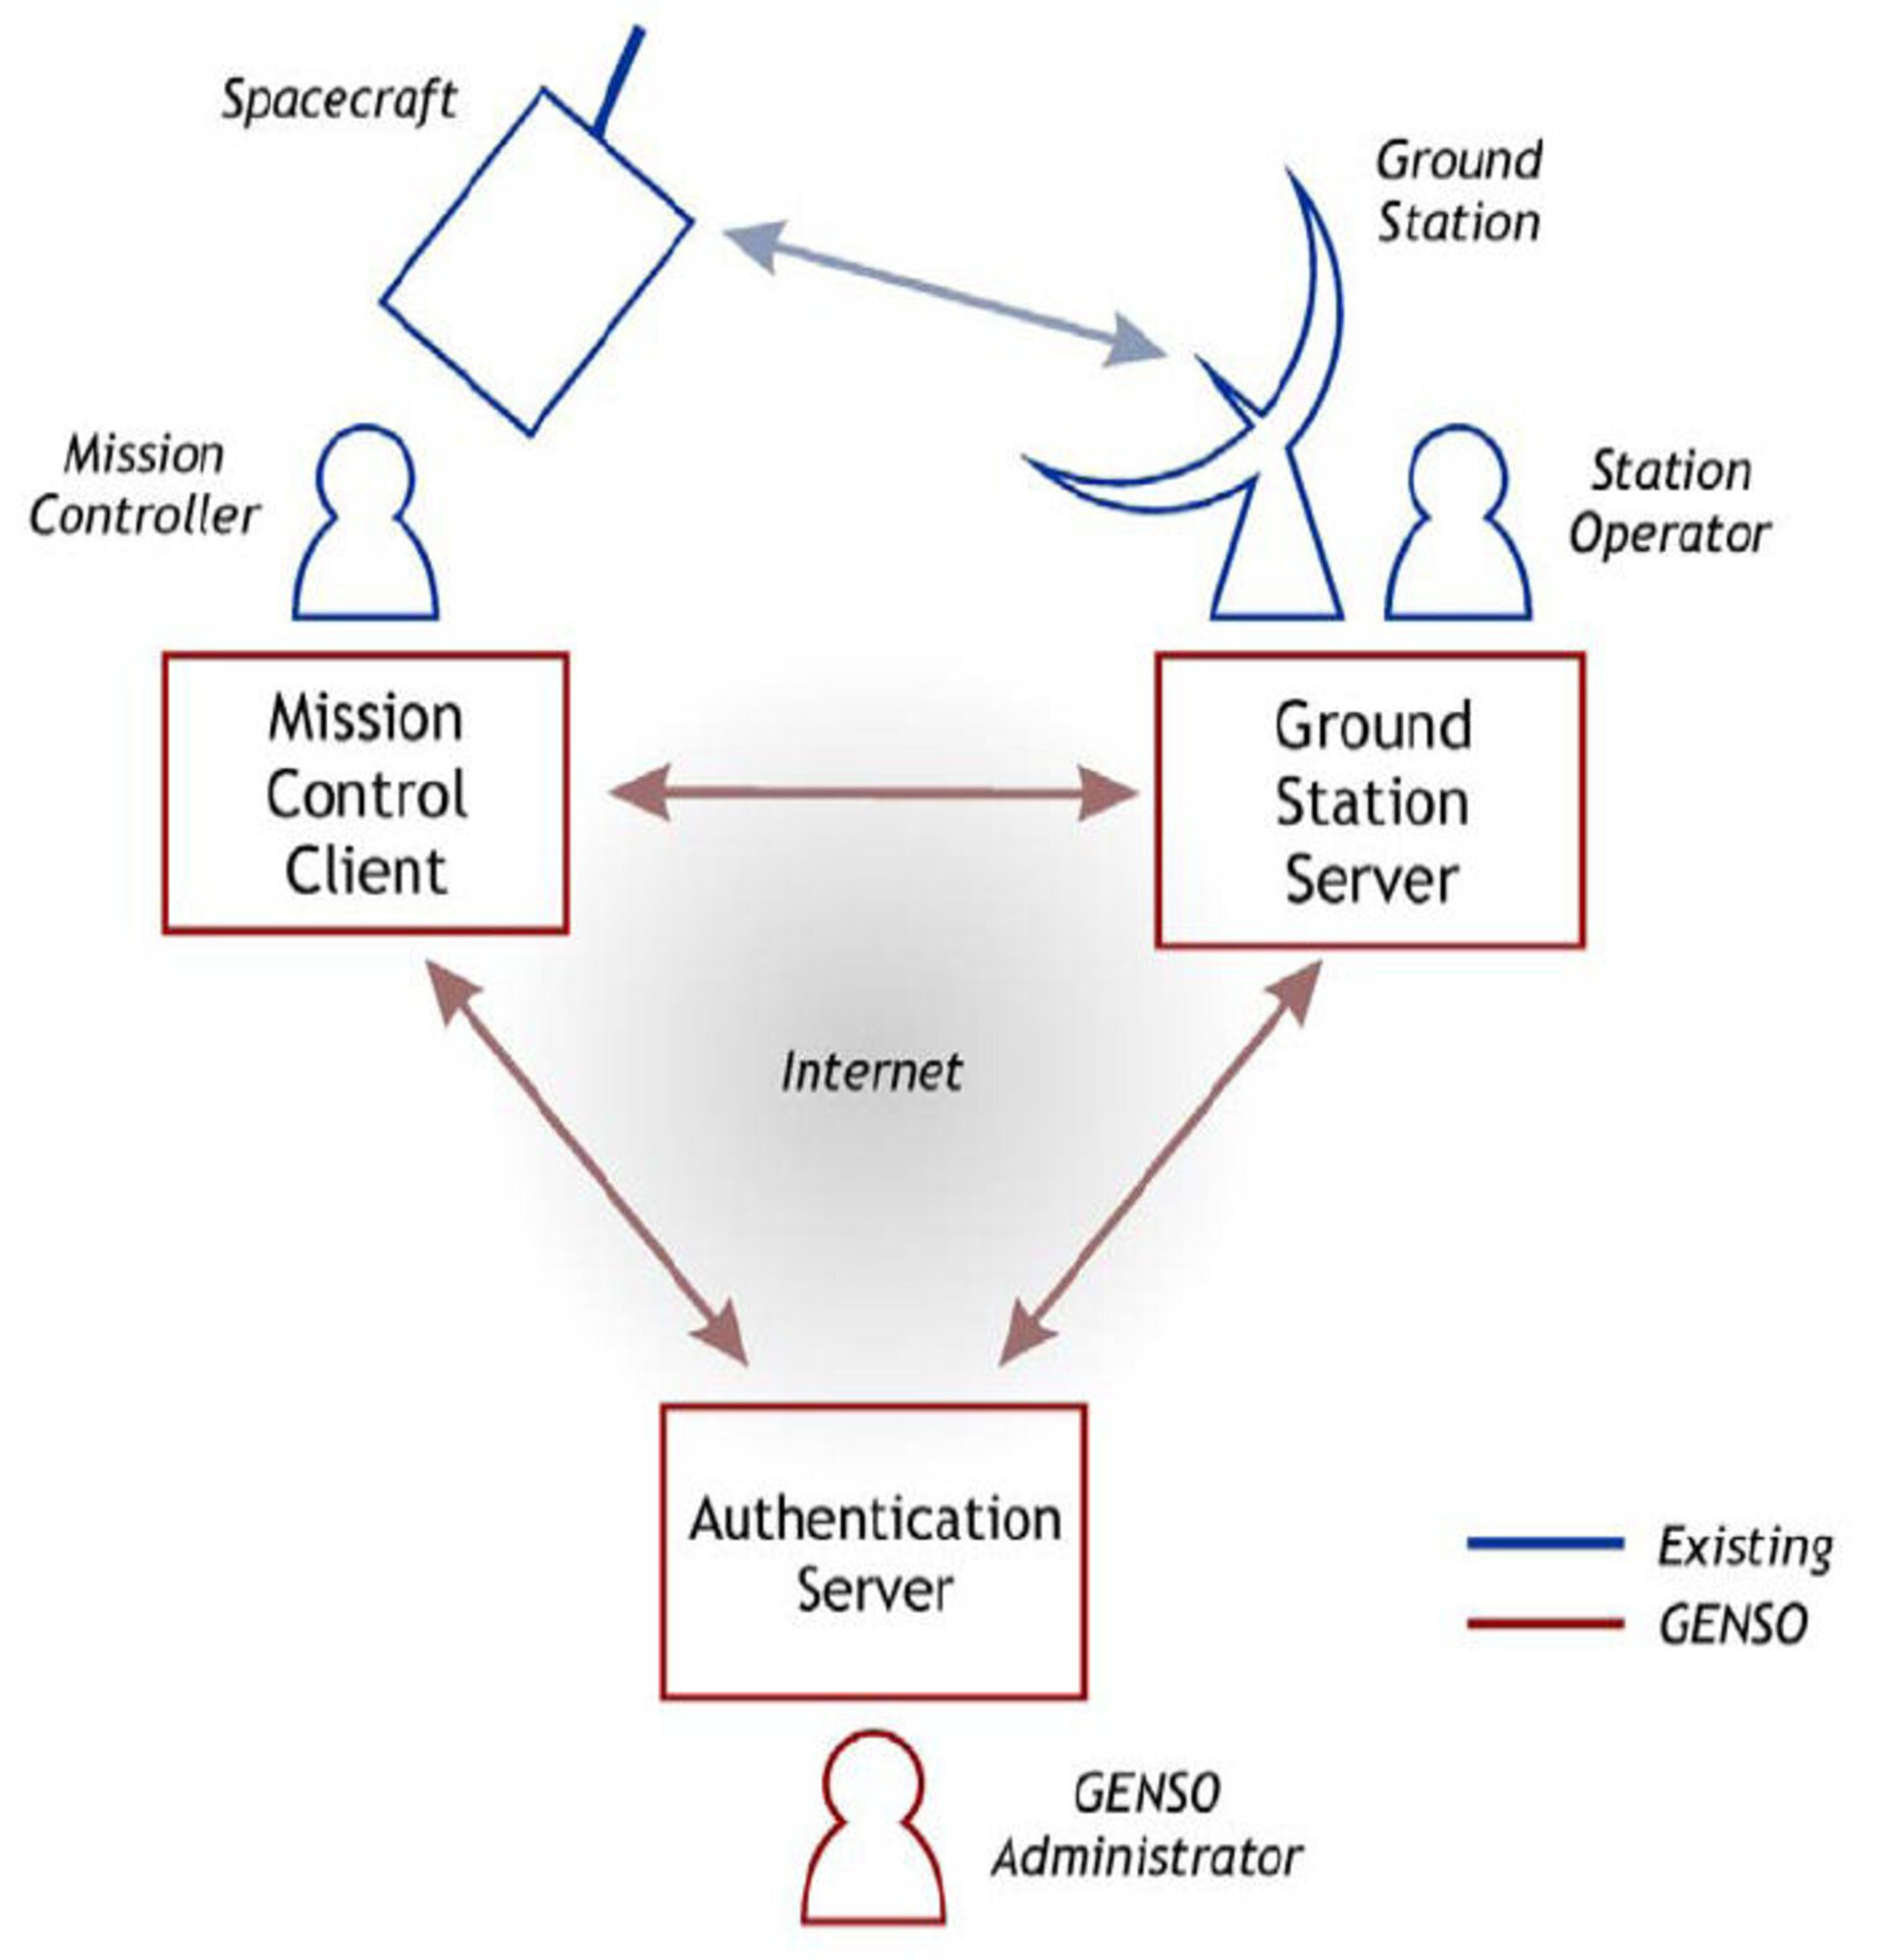 How GENSO will fit into the existing satellite communication framework